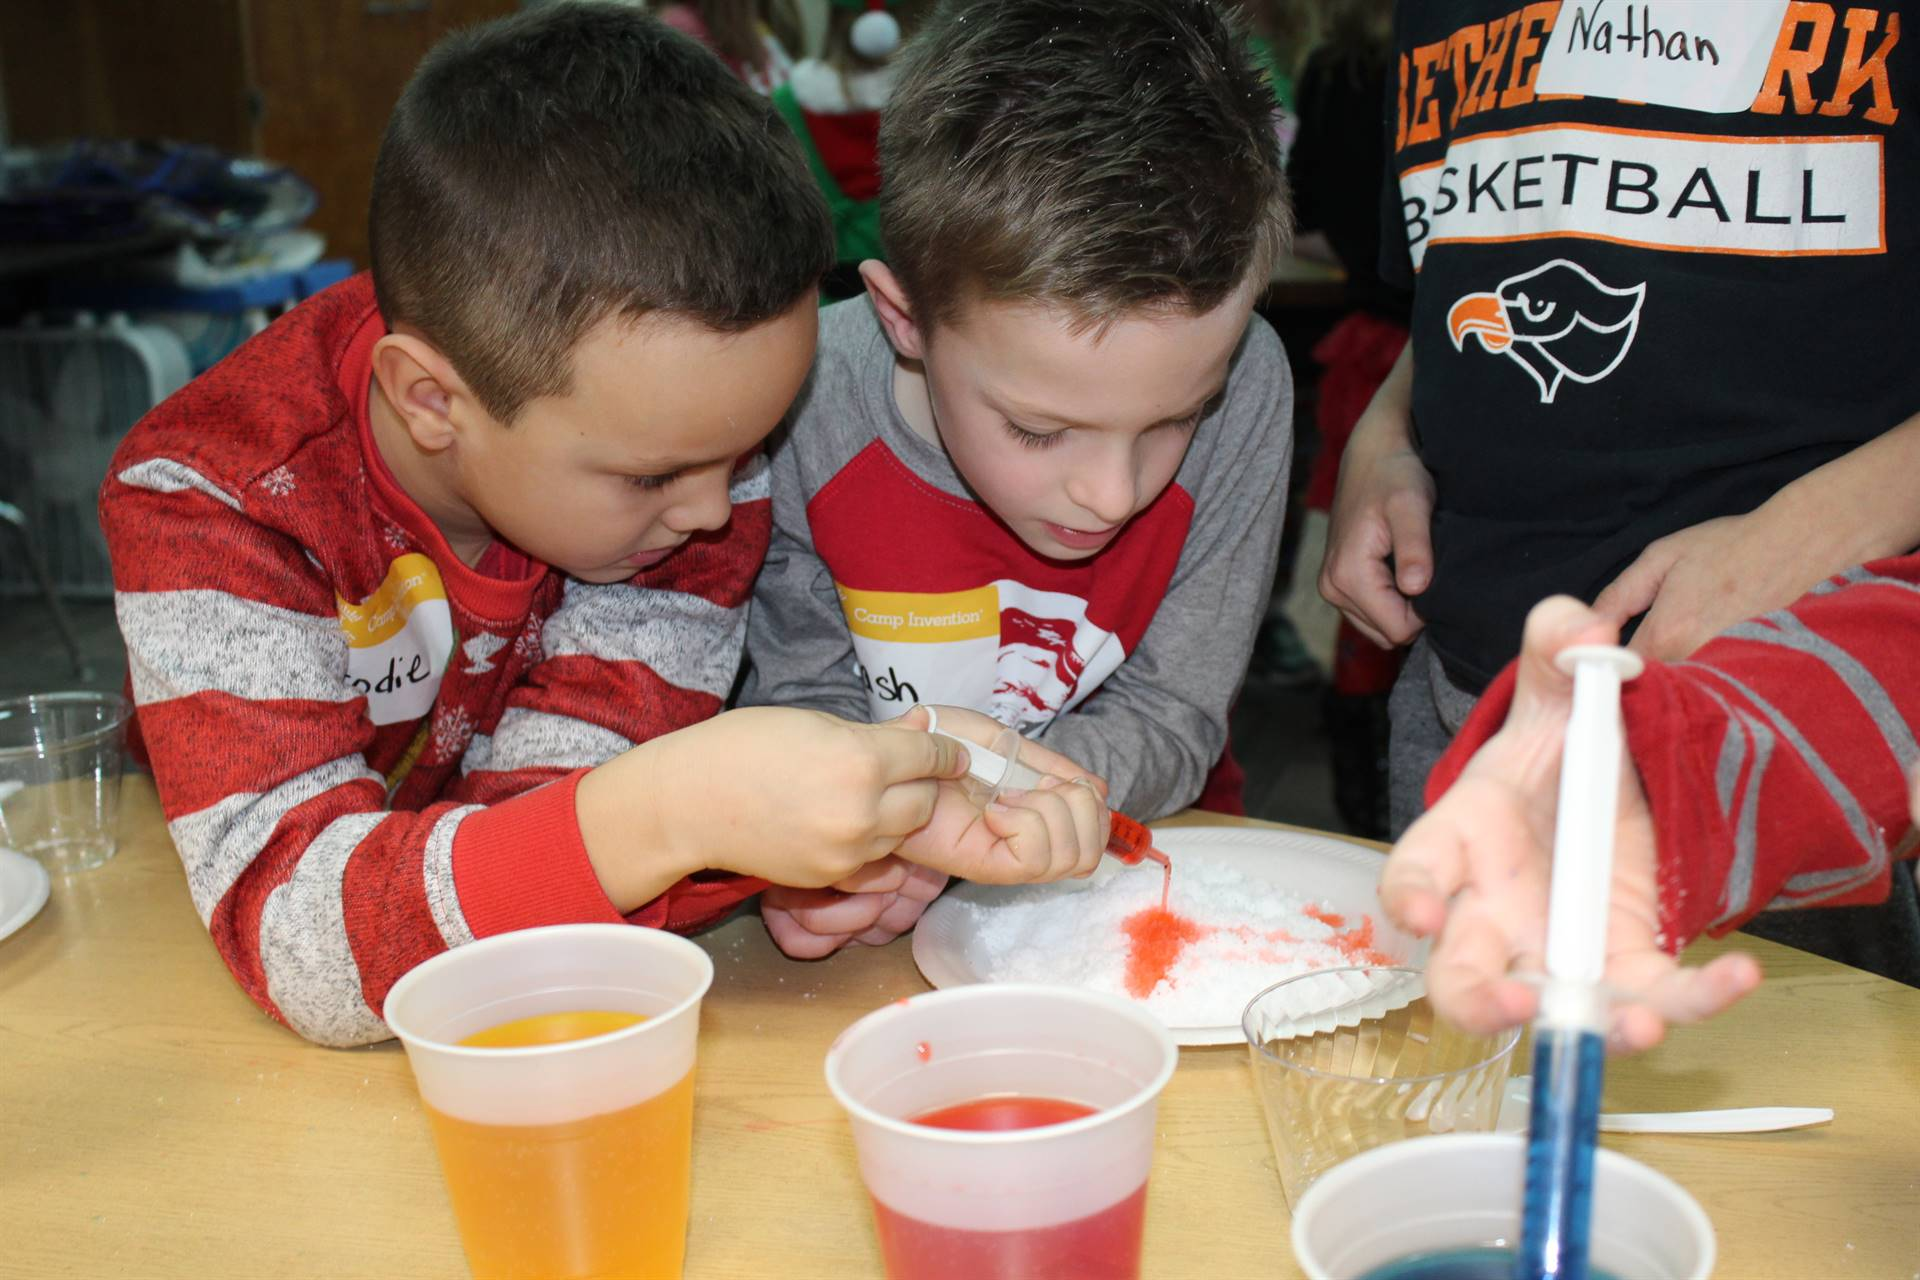 Two students adding orange food coloring to fake snow